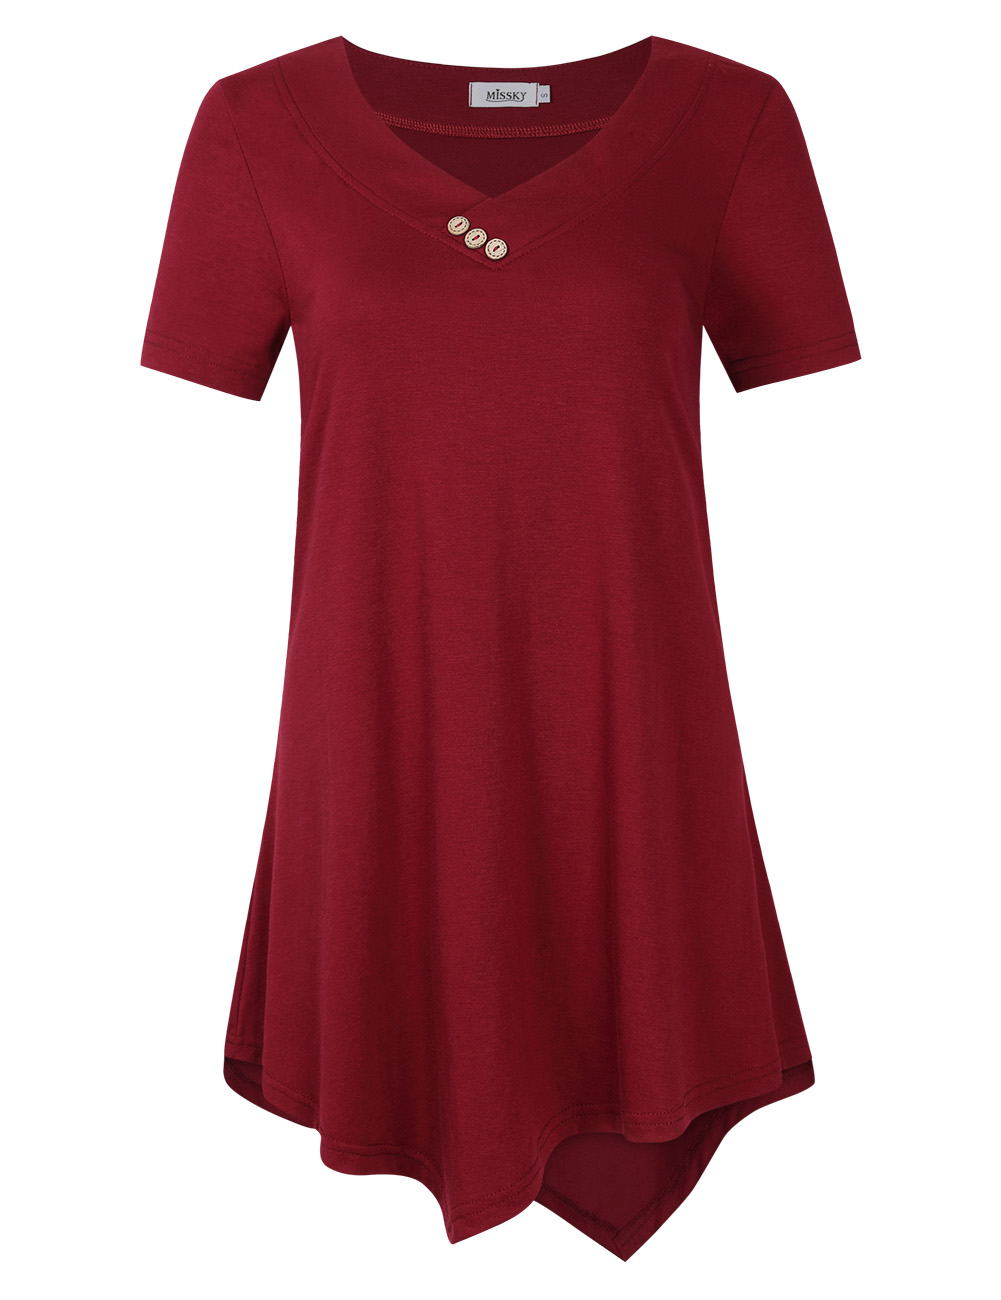 [US Direct] Missky Women's Short Sleeve V Neck Flowy Tunic Top Casual T-Shirt